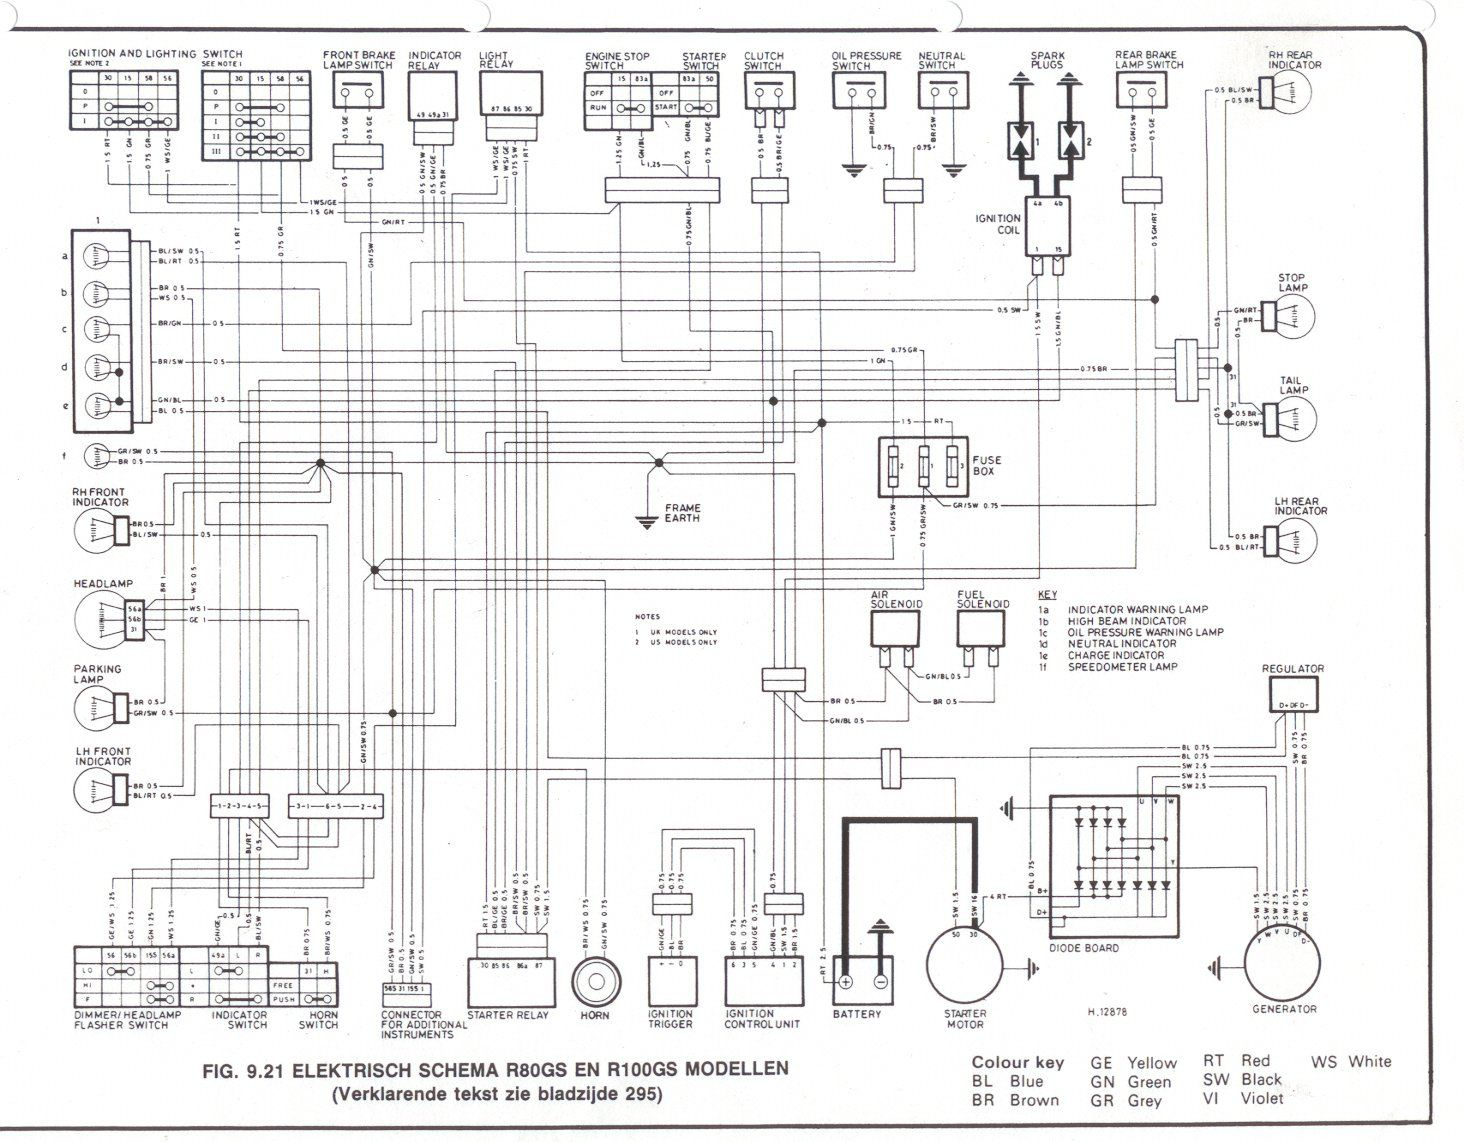 bmw r1150r electrical wiring diagram 3 electrical wiring diagram bmw cars crossword  [ 1464 x 1142 Pixel ]